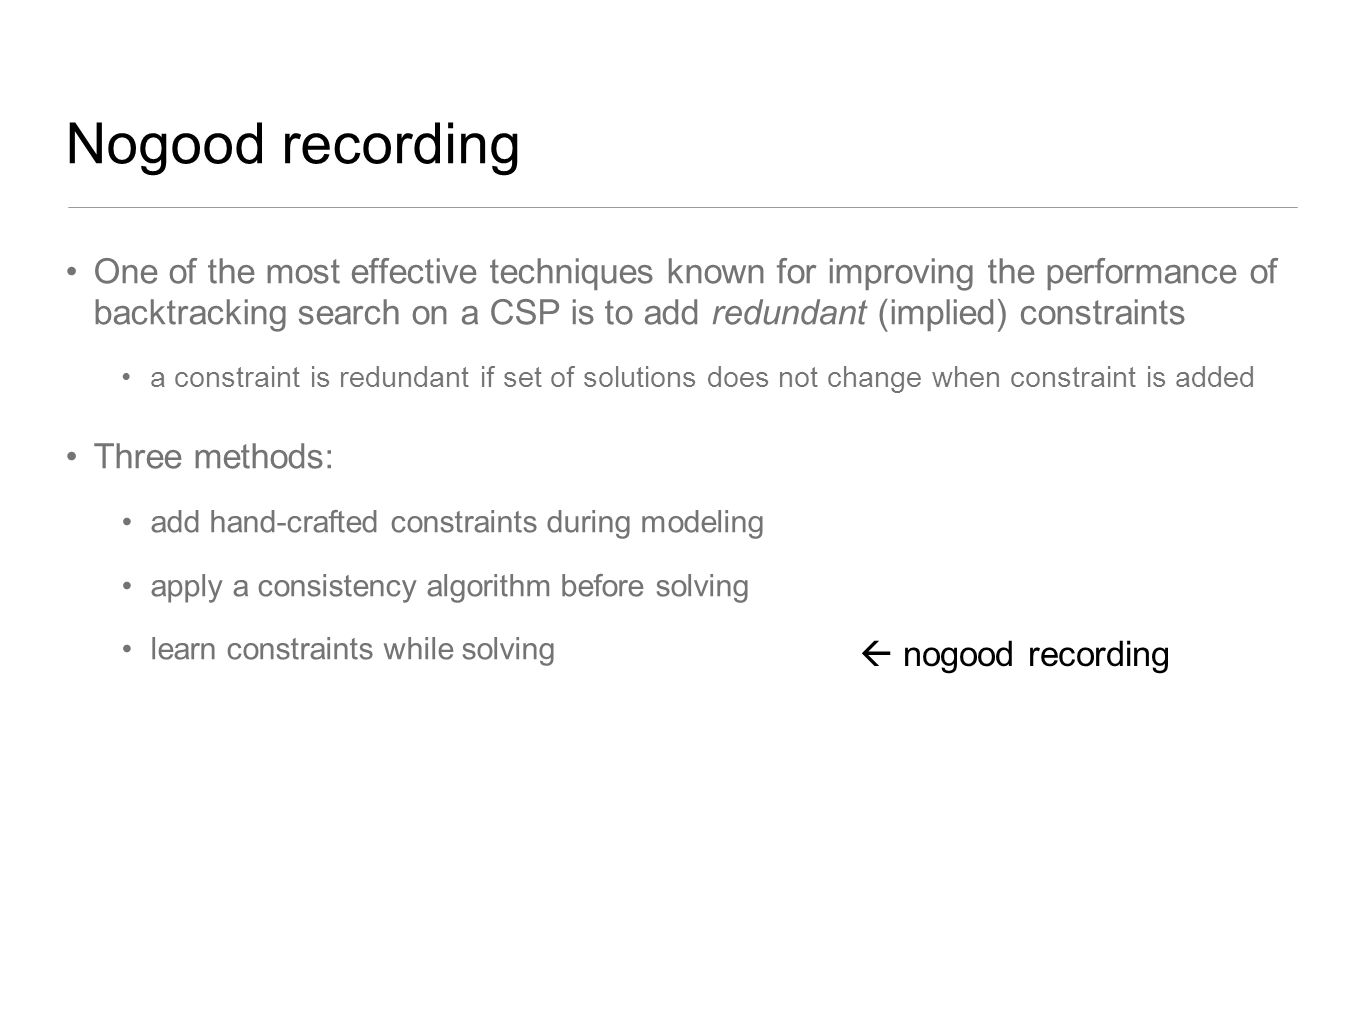 Nogood recording One of the most effective techniques known for improving the performance of backtracking search on a CSP is to add redundant (implied